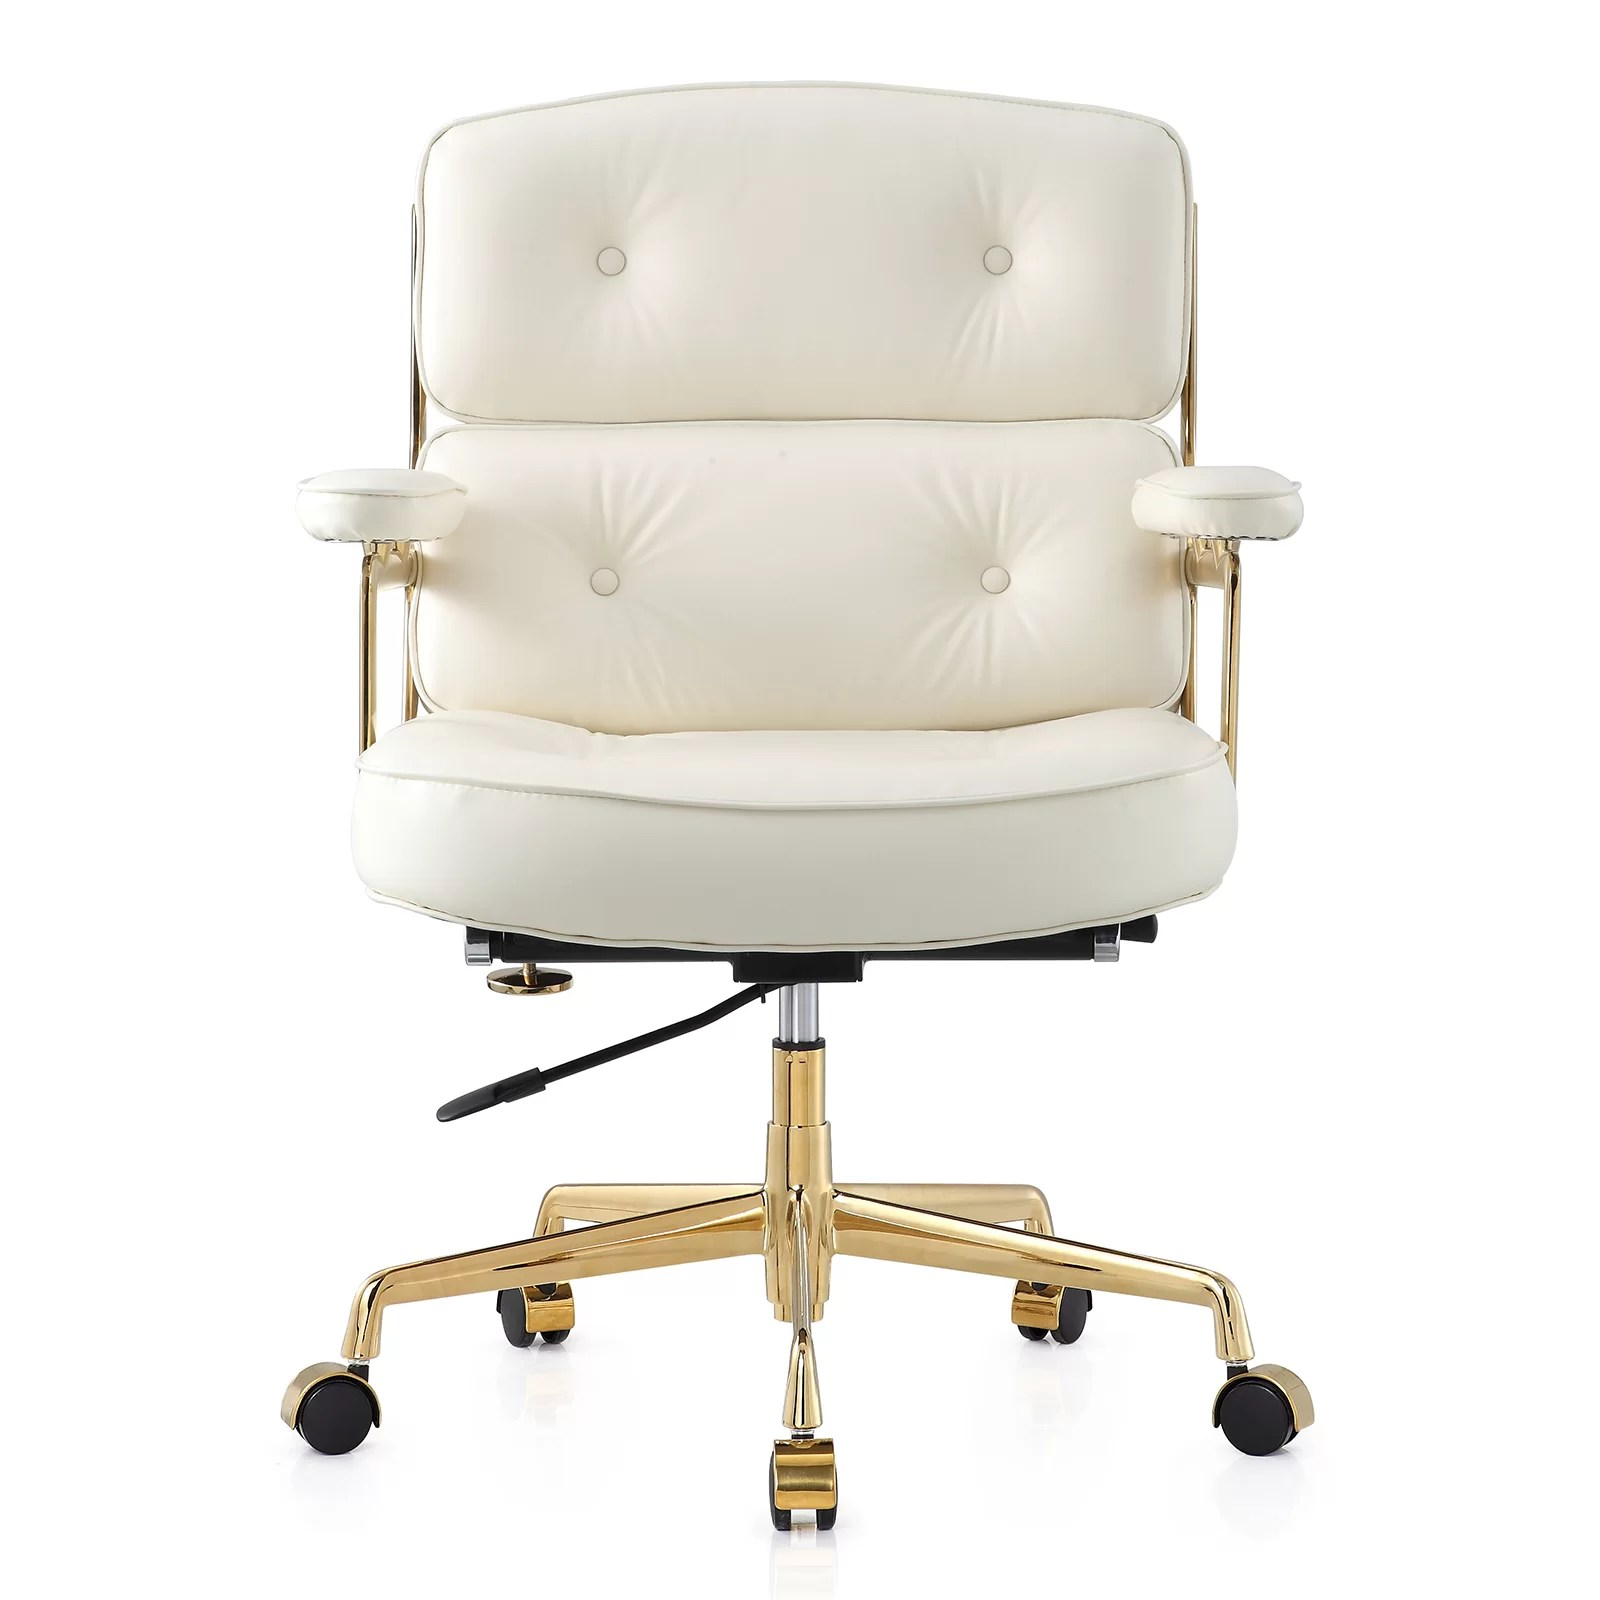 White And Gold Desk Chair 16 Quot Leather Office Chair With Lumbar Support And Reviews